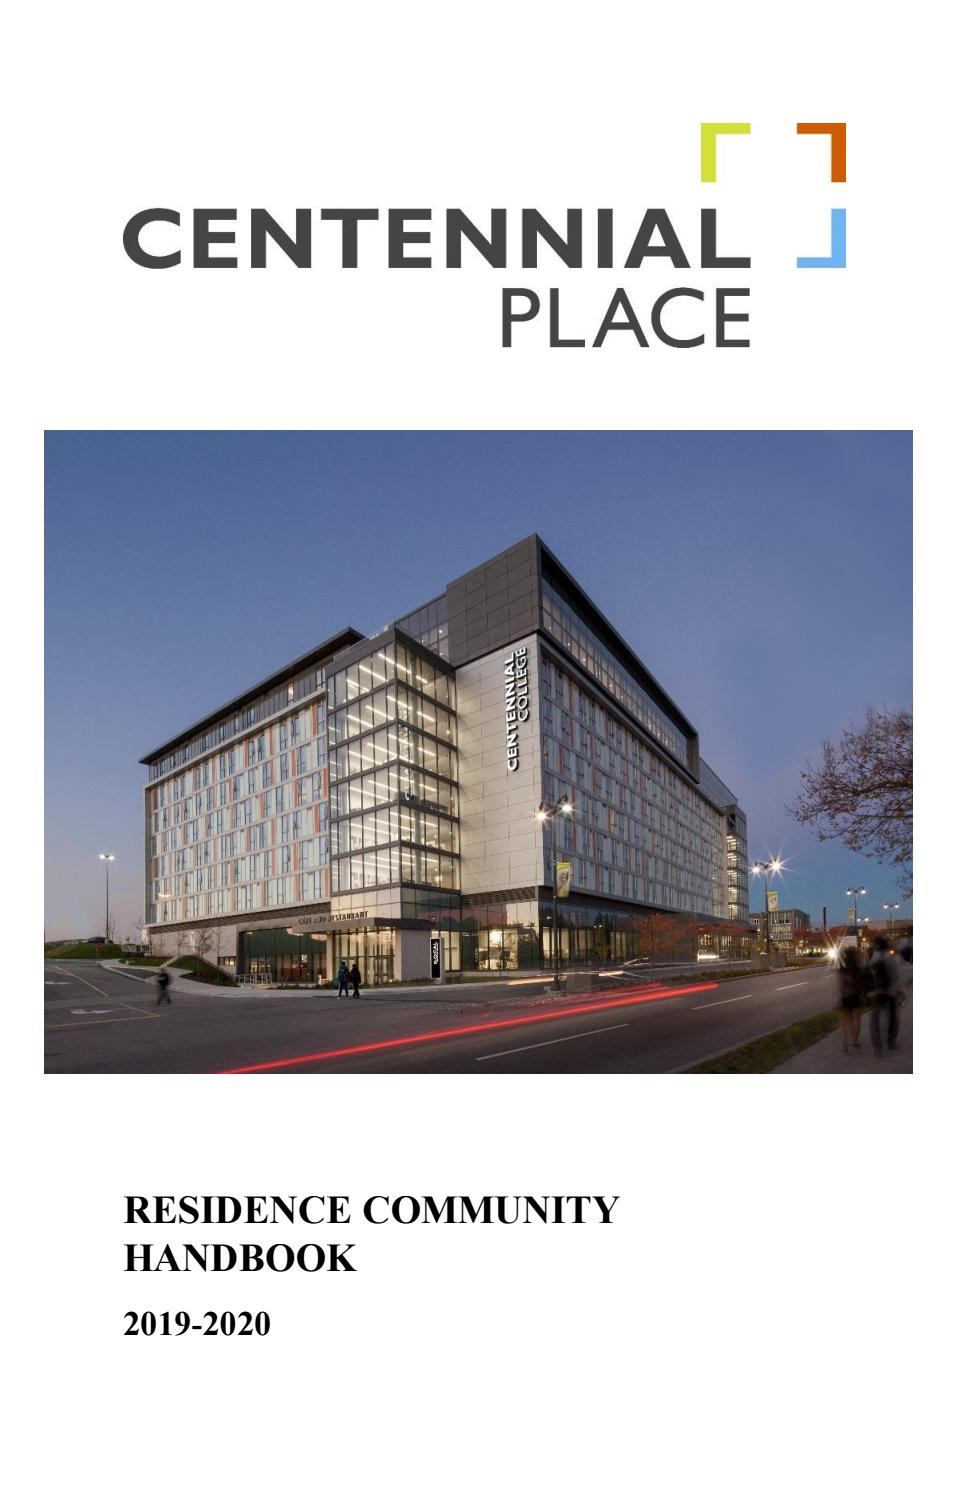 Centennial Place Handbook 2019 2020 By Canadian Campus Communities Issuu